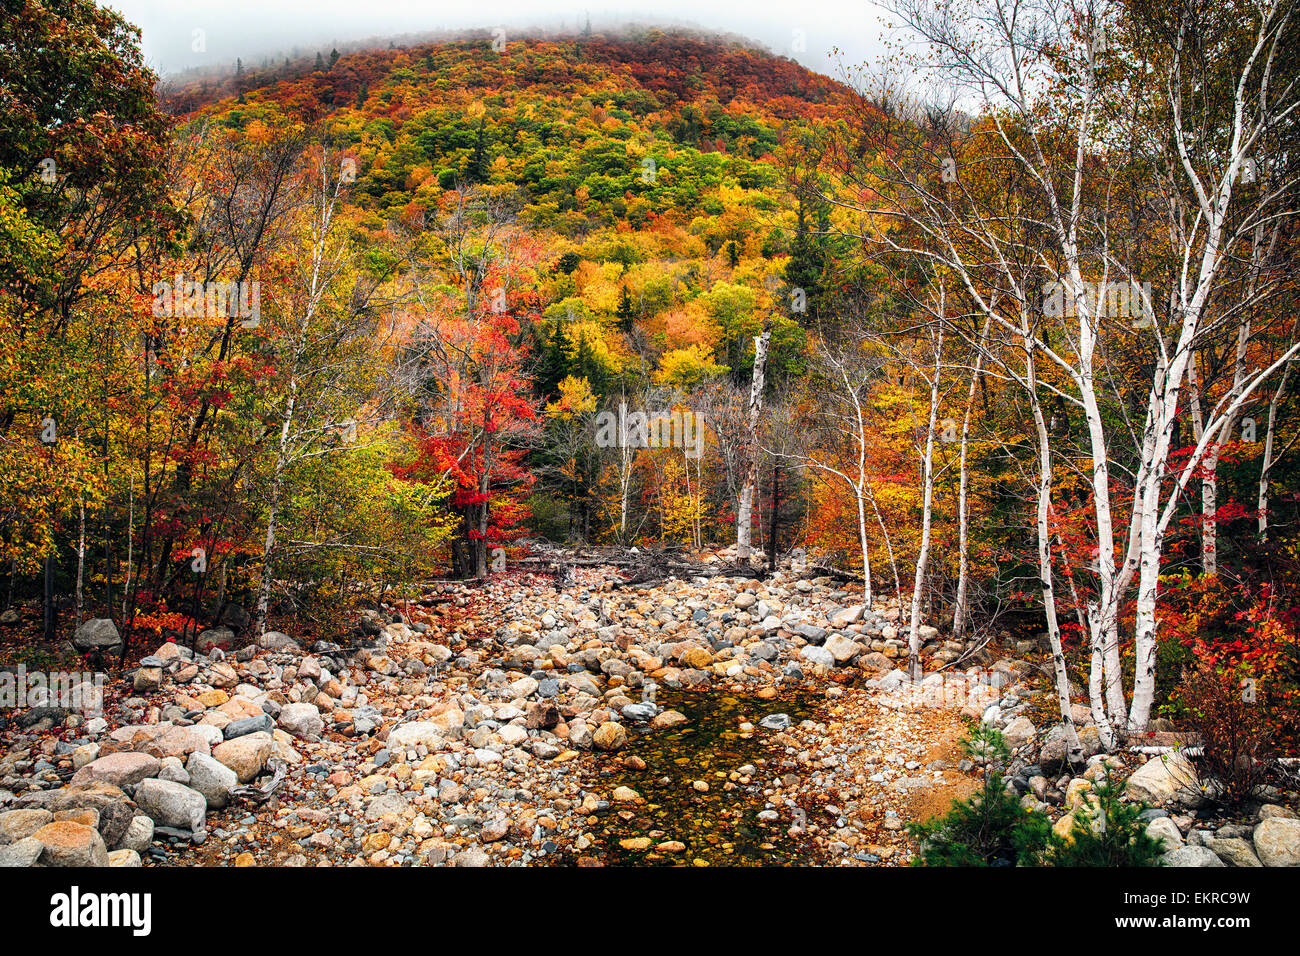 Low Angle View of a Mountain dans le brouillard et un ruisseau à sec à l'automne, White Mountains Photo Stock